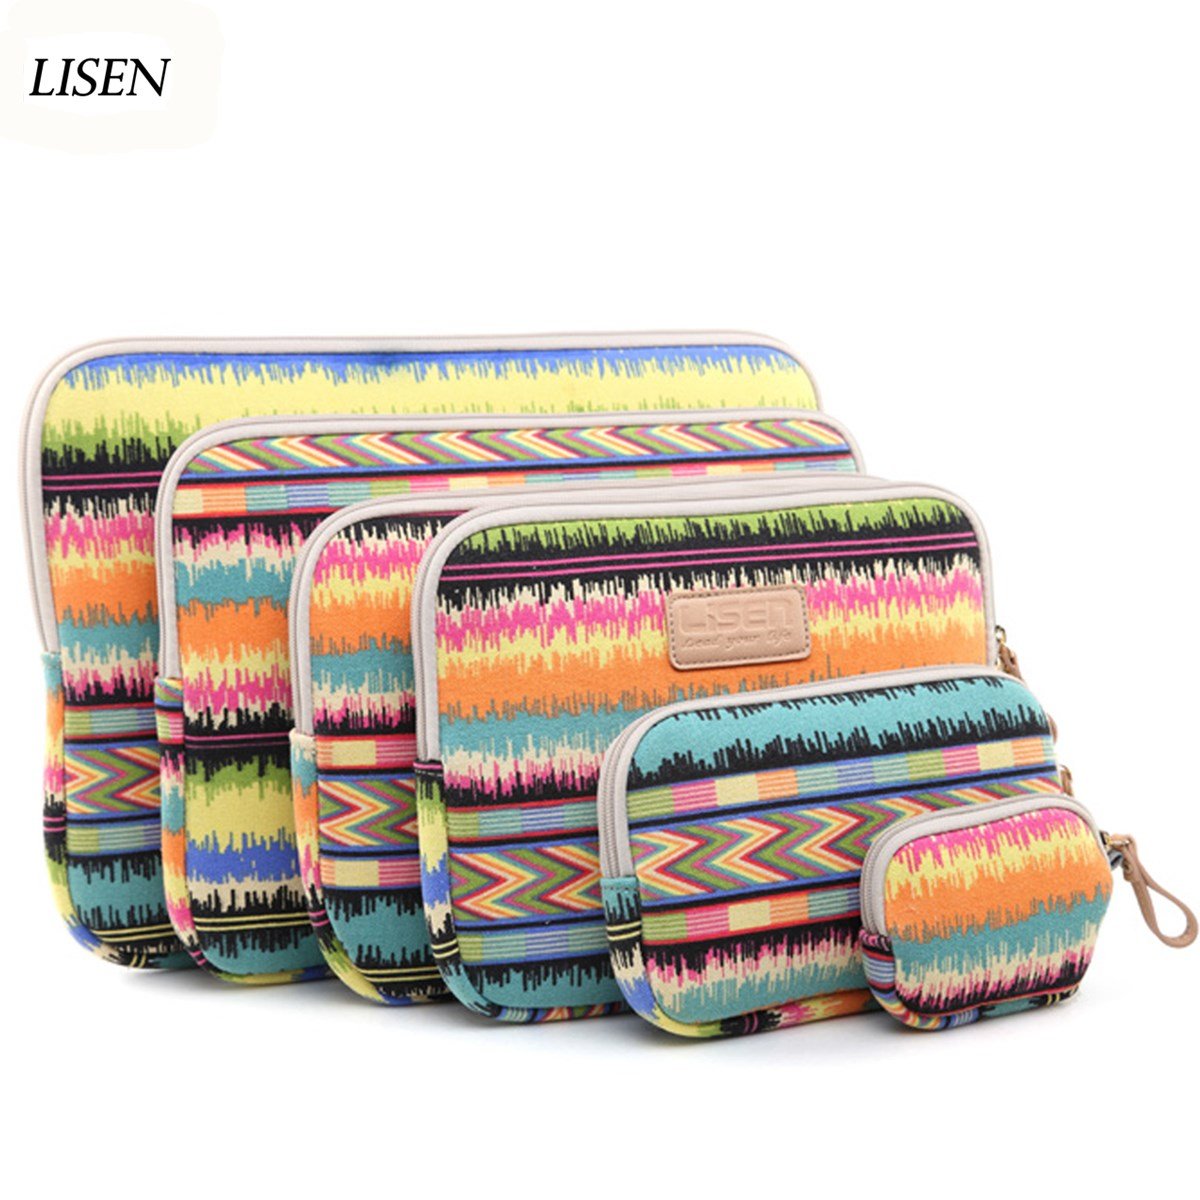 Laptop bag Sleeve Case For Macbook Air Pro Retina 11 11.6 12 13 13.3 15 15.6 Notebook for ipad mini 7.9 ipad air 9.7 table cover